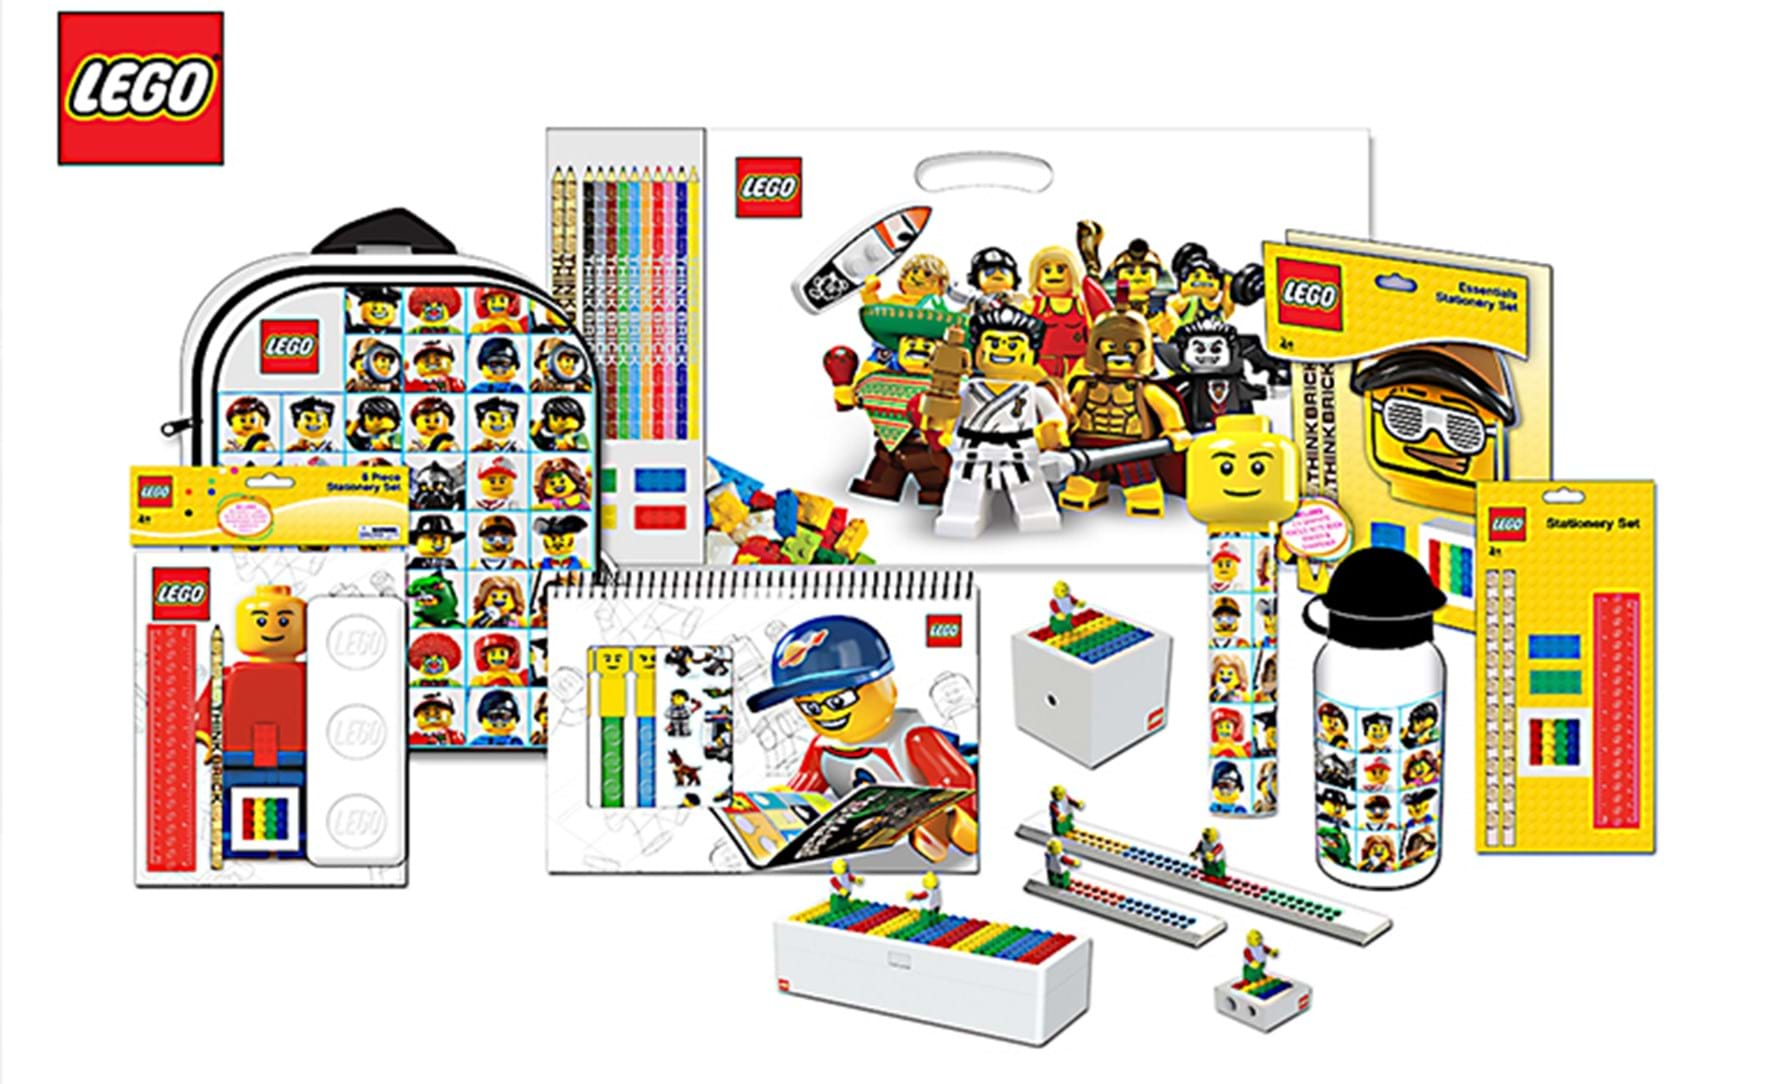 LEGO Brand Extension